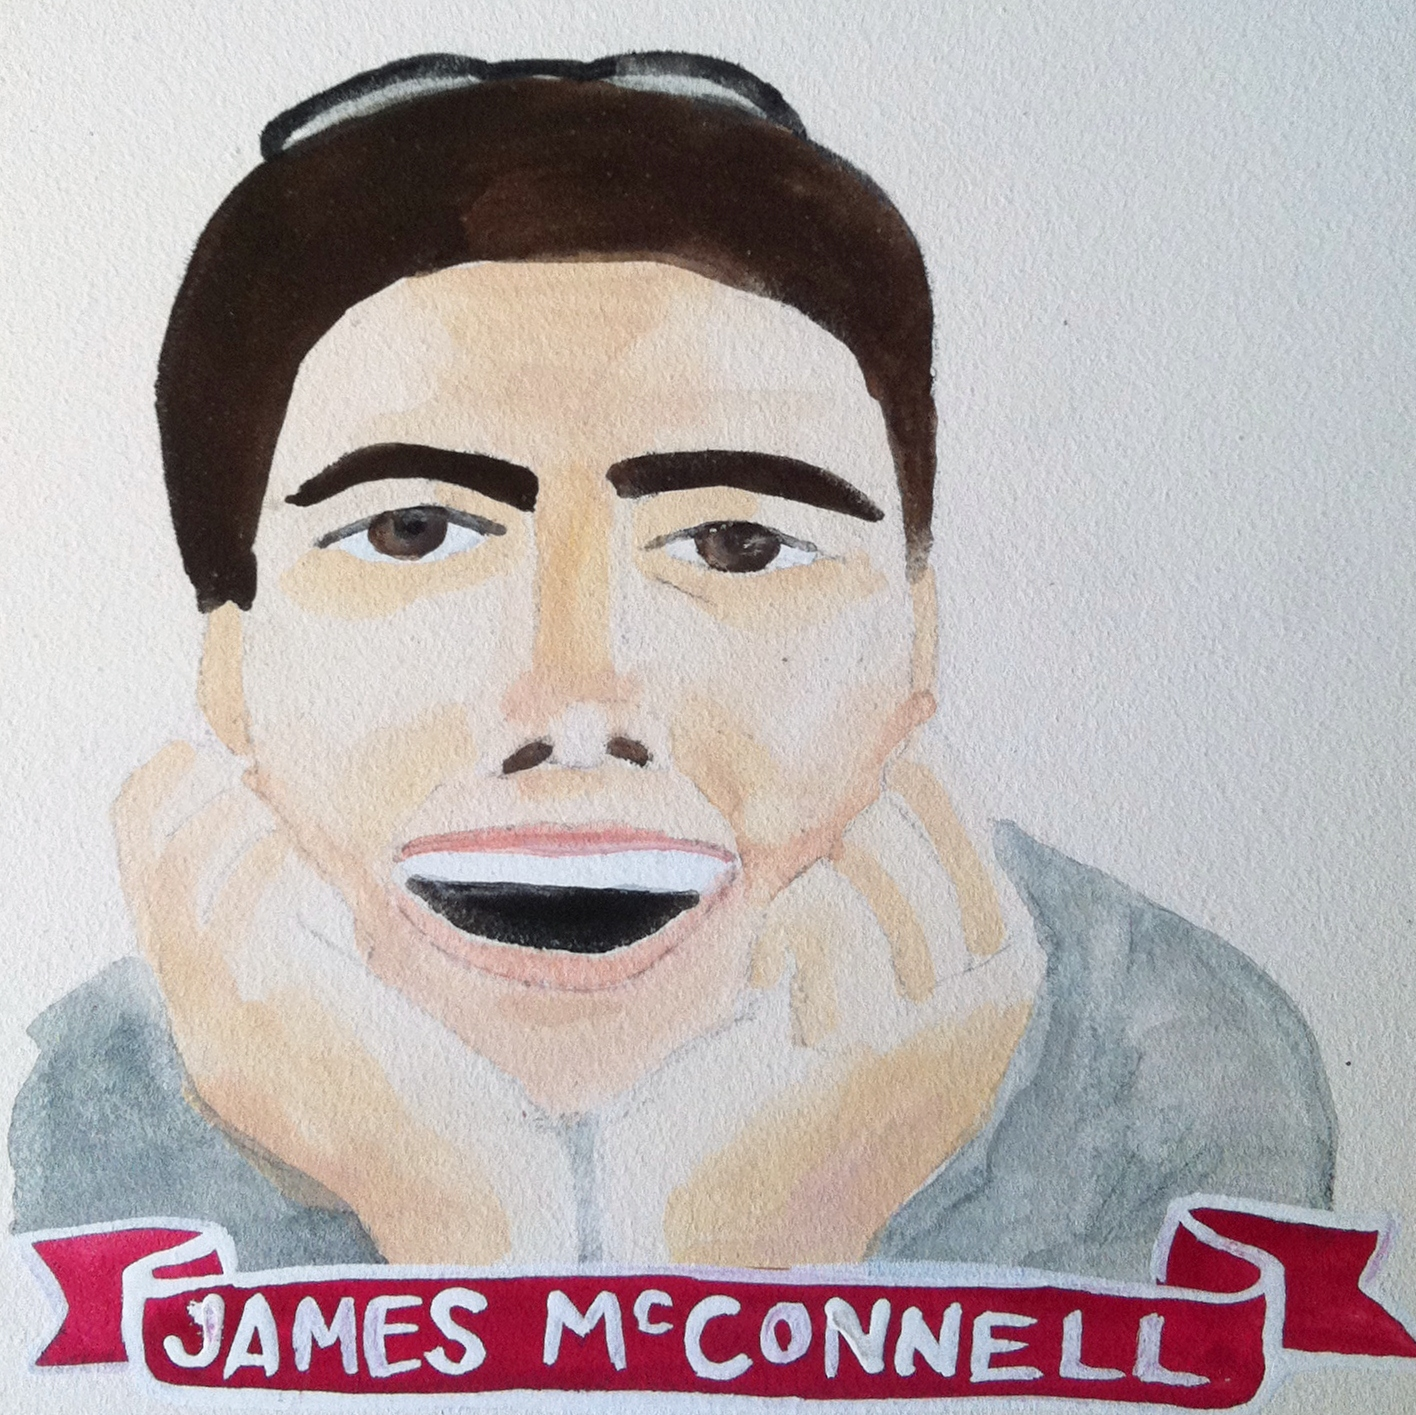 Talent Loves Company at Barbara Archer Gallery: 365 portraits by Lydia Walls - James McConnell